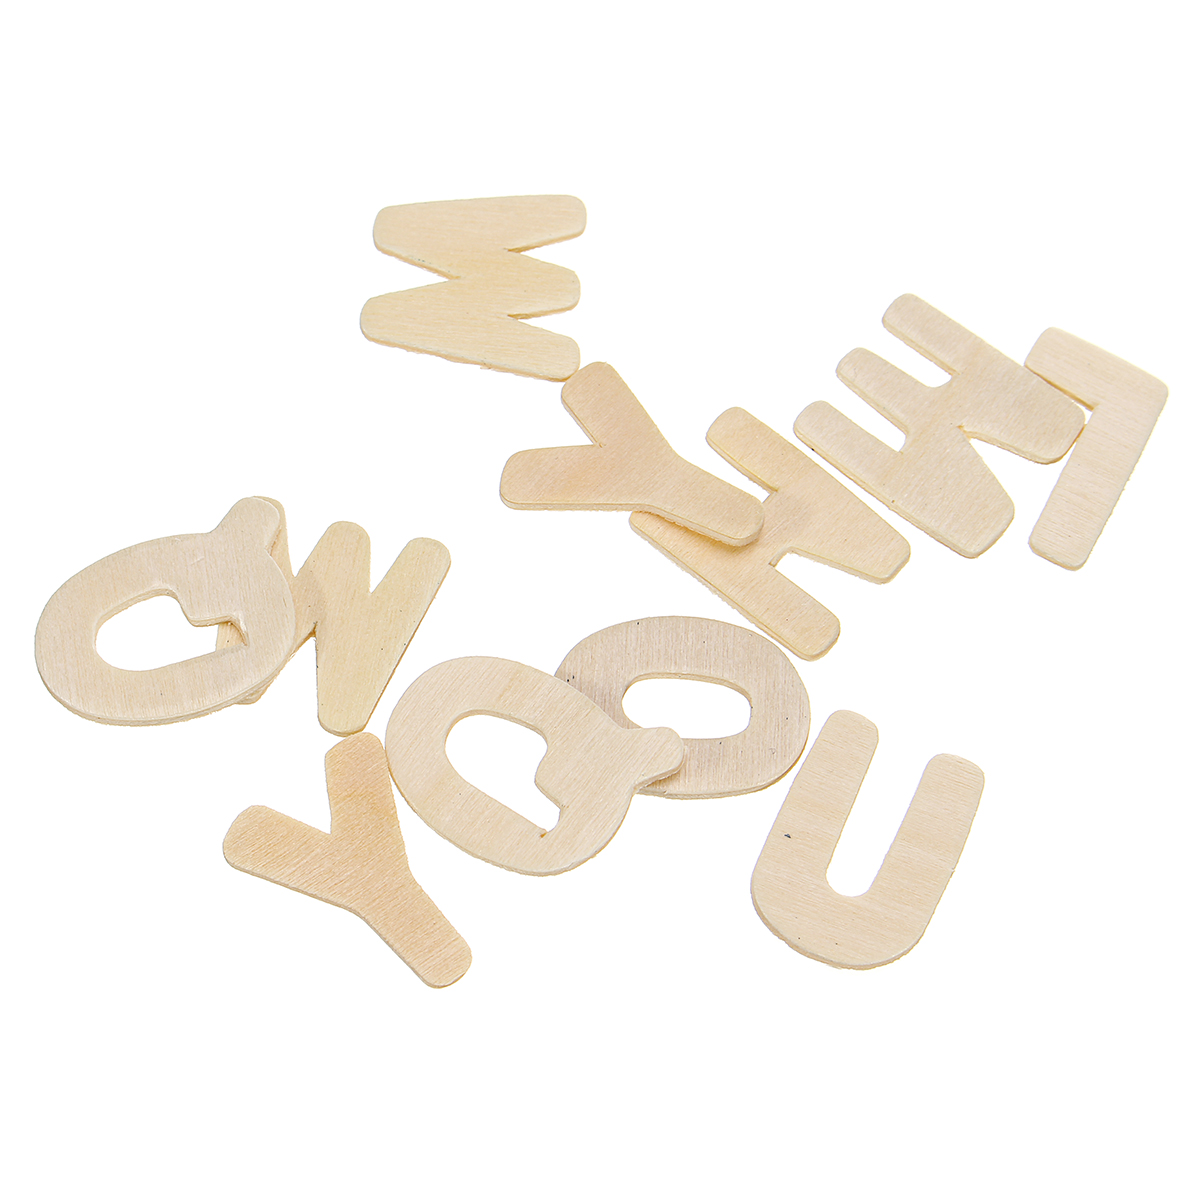 156X Wooden Scrabble Tiles Letters Puzzle Blocks Crafts Wood Alphabet Kids Early Education Toys Gift